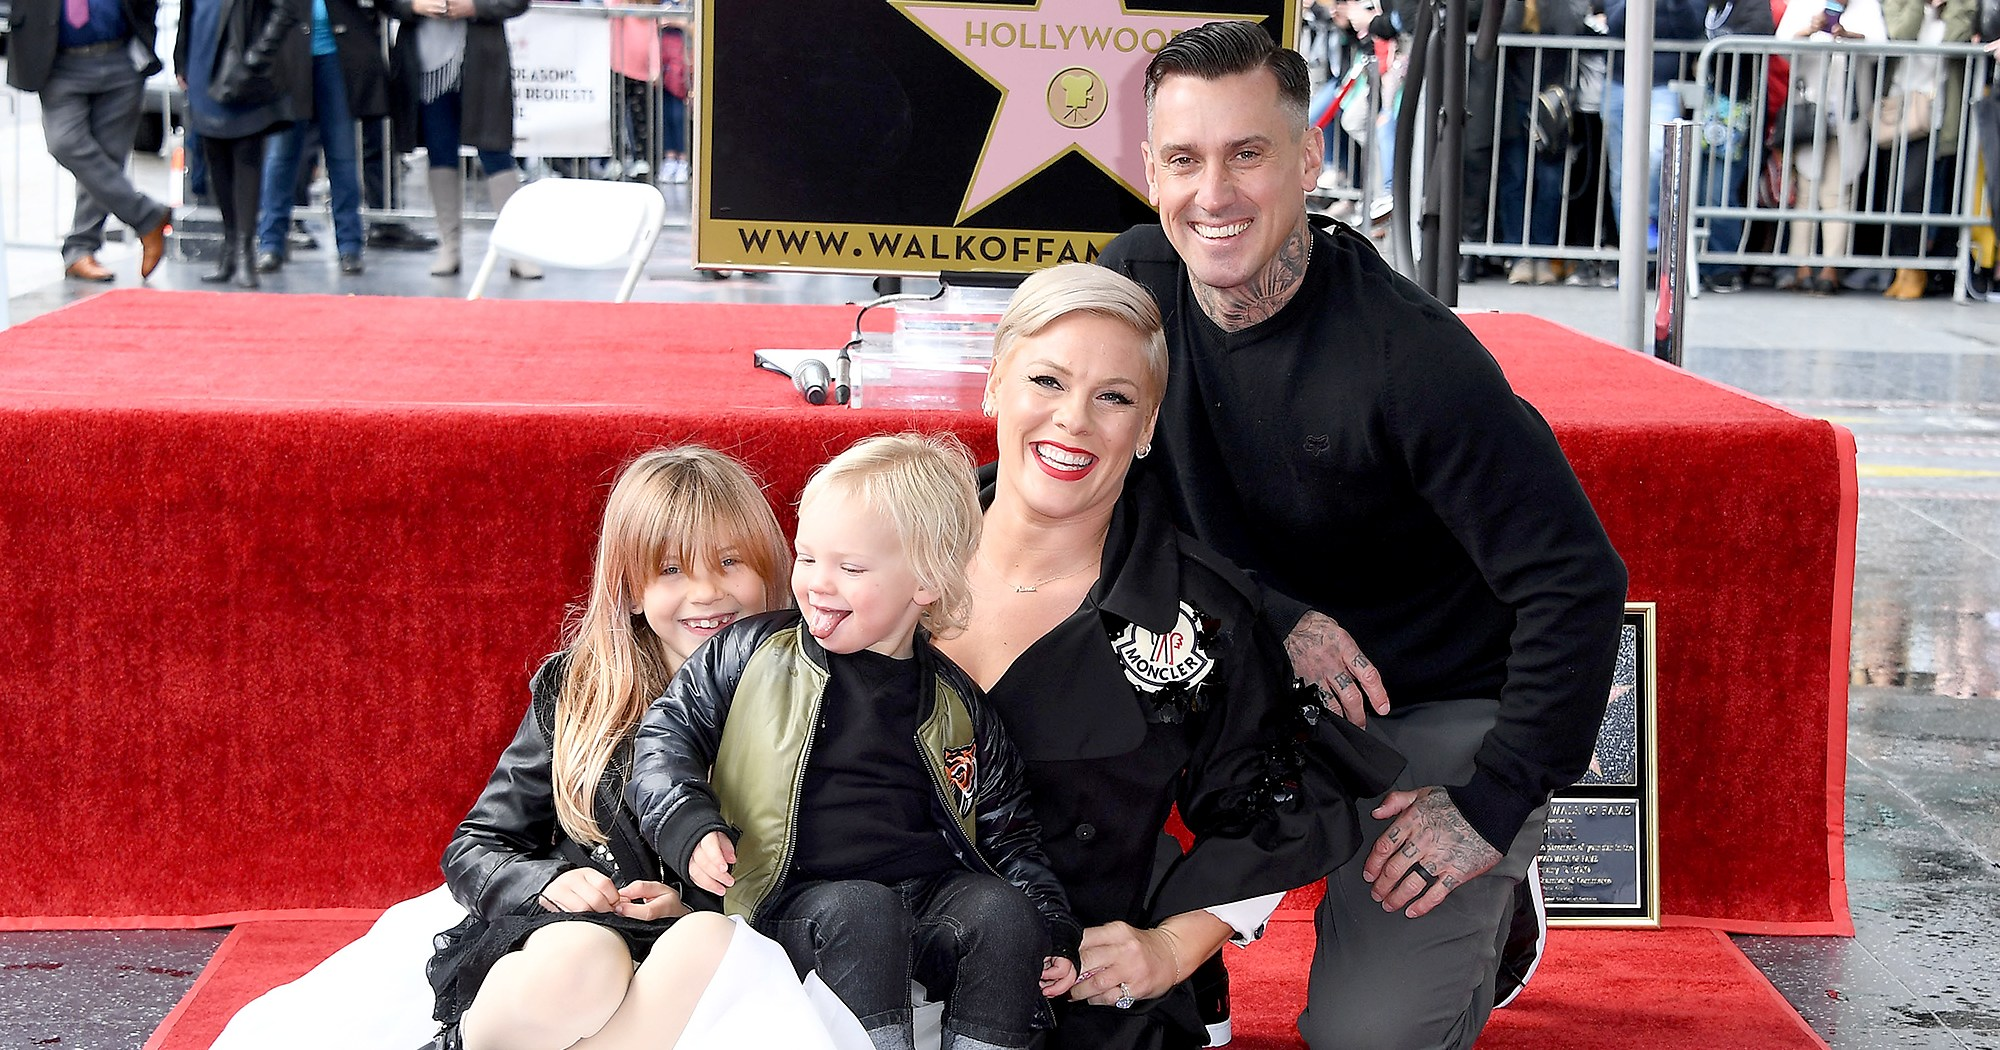 Pink's Daughter Congratulates Her on Hollywood Walk of Fame Star